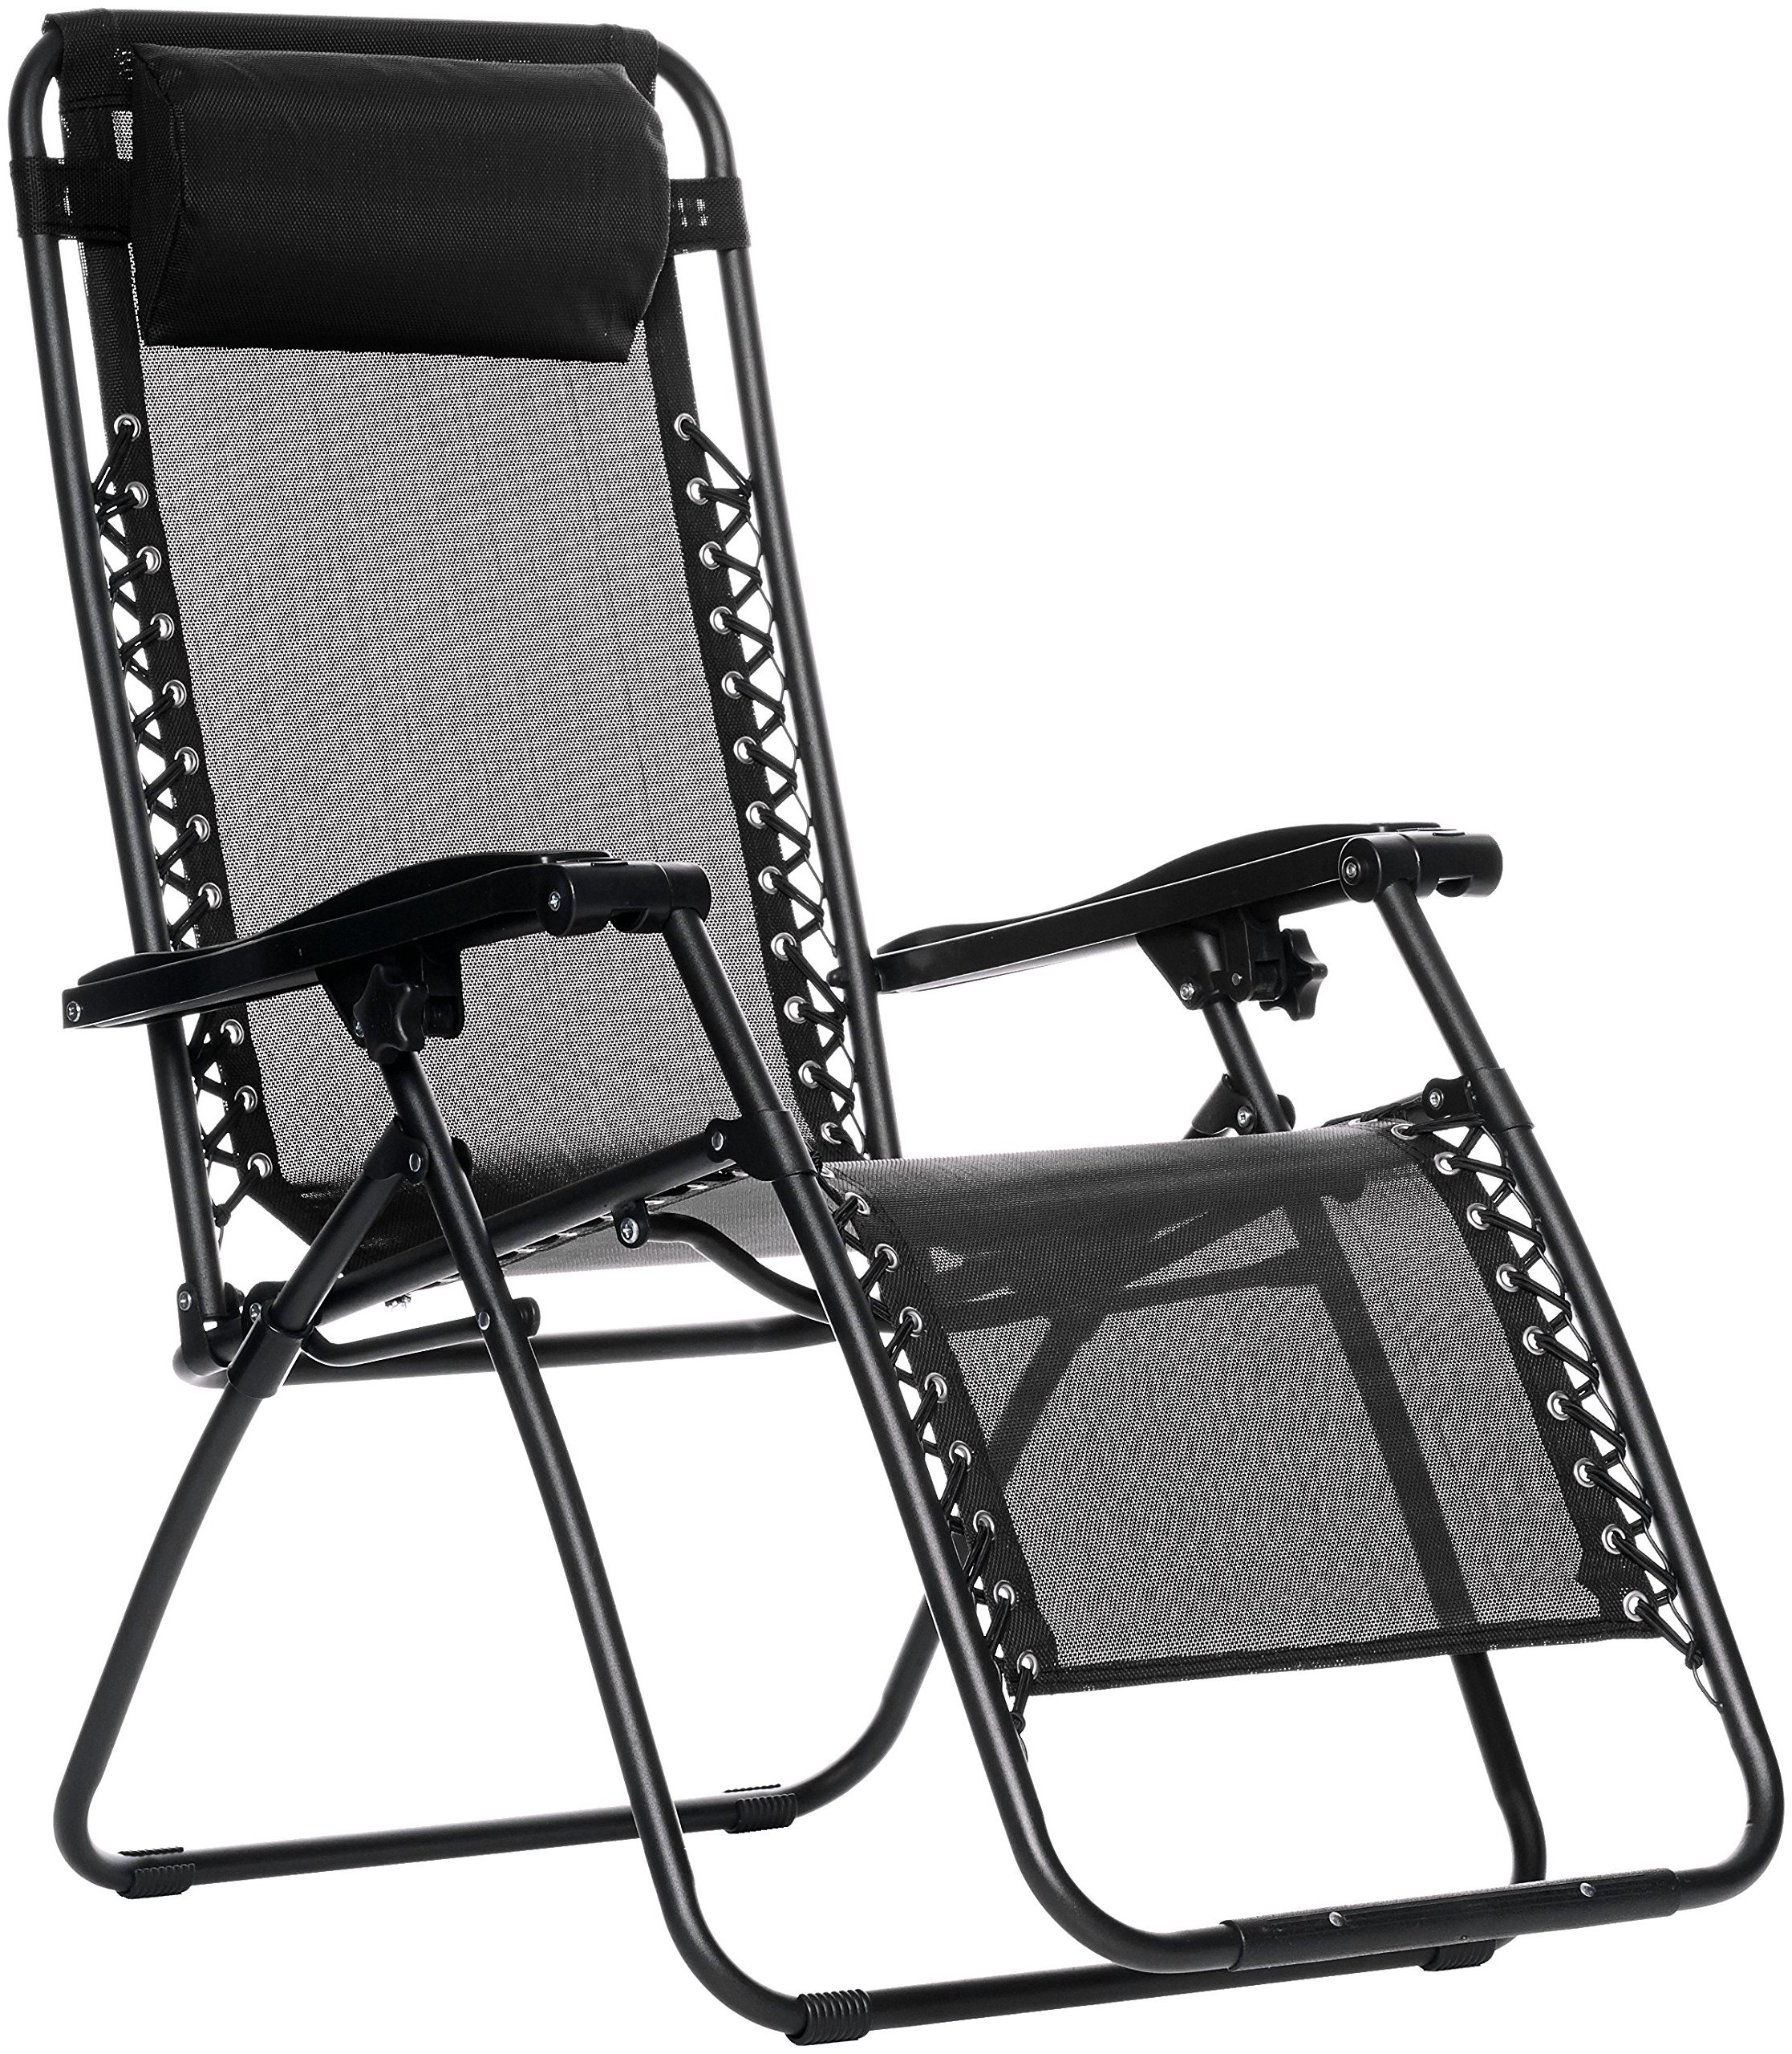 AmazonBasics Zero Gravity Chair - Black